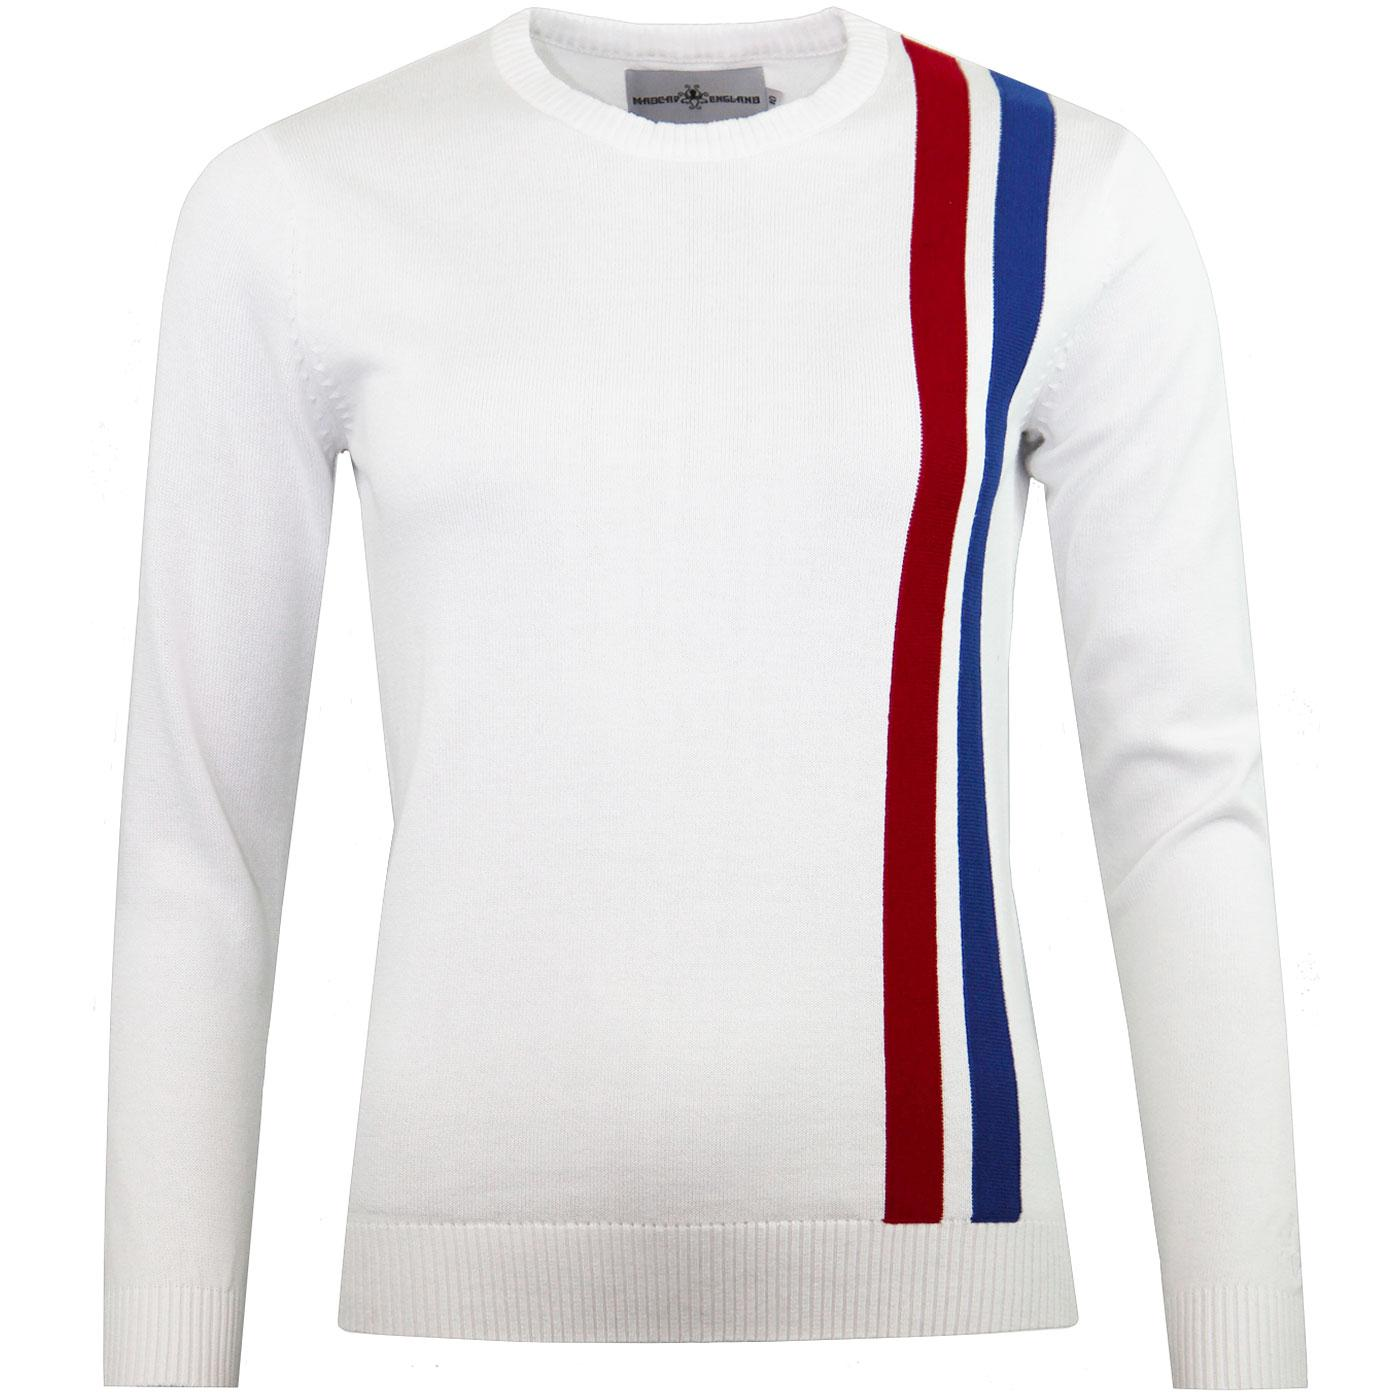 Madcap England 60s Mod Women's Racing Jumper WHITE